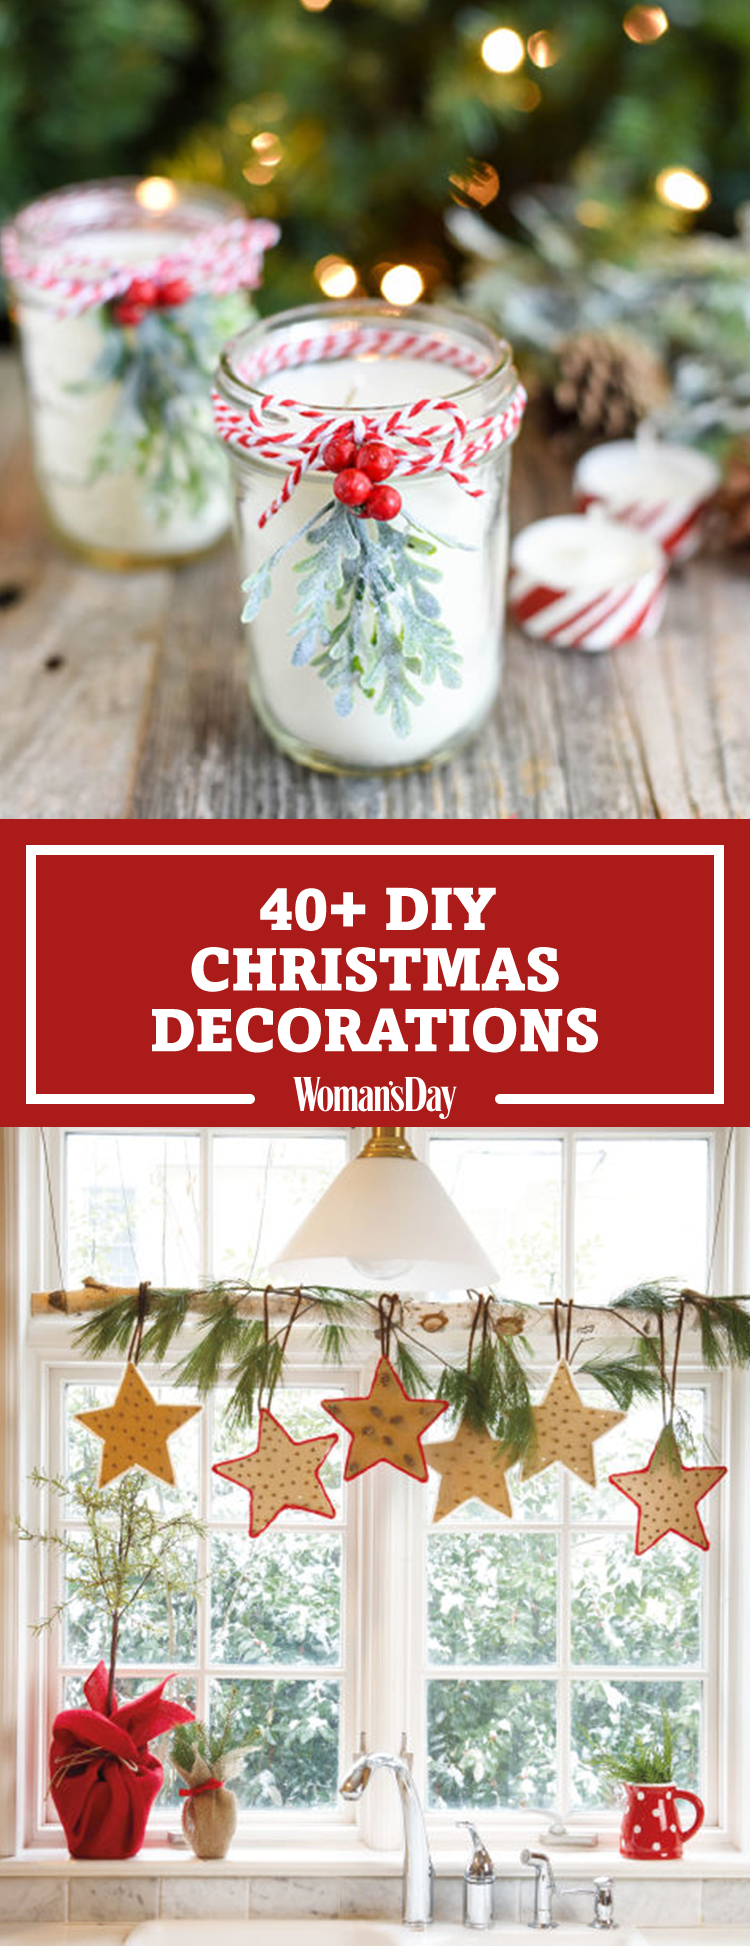 47 Easy Diy Christmas Decorations Homemade Ideas For Home Decorators Catalog Best Ideas of Home Decor and Design [homedecoratorscatalog.us]